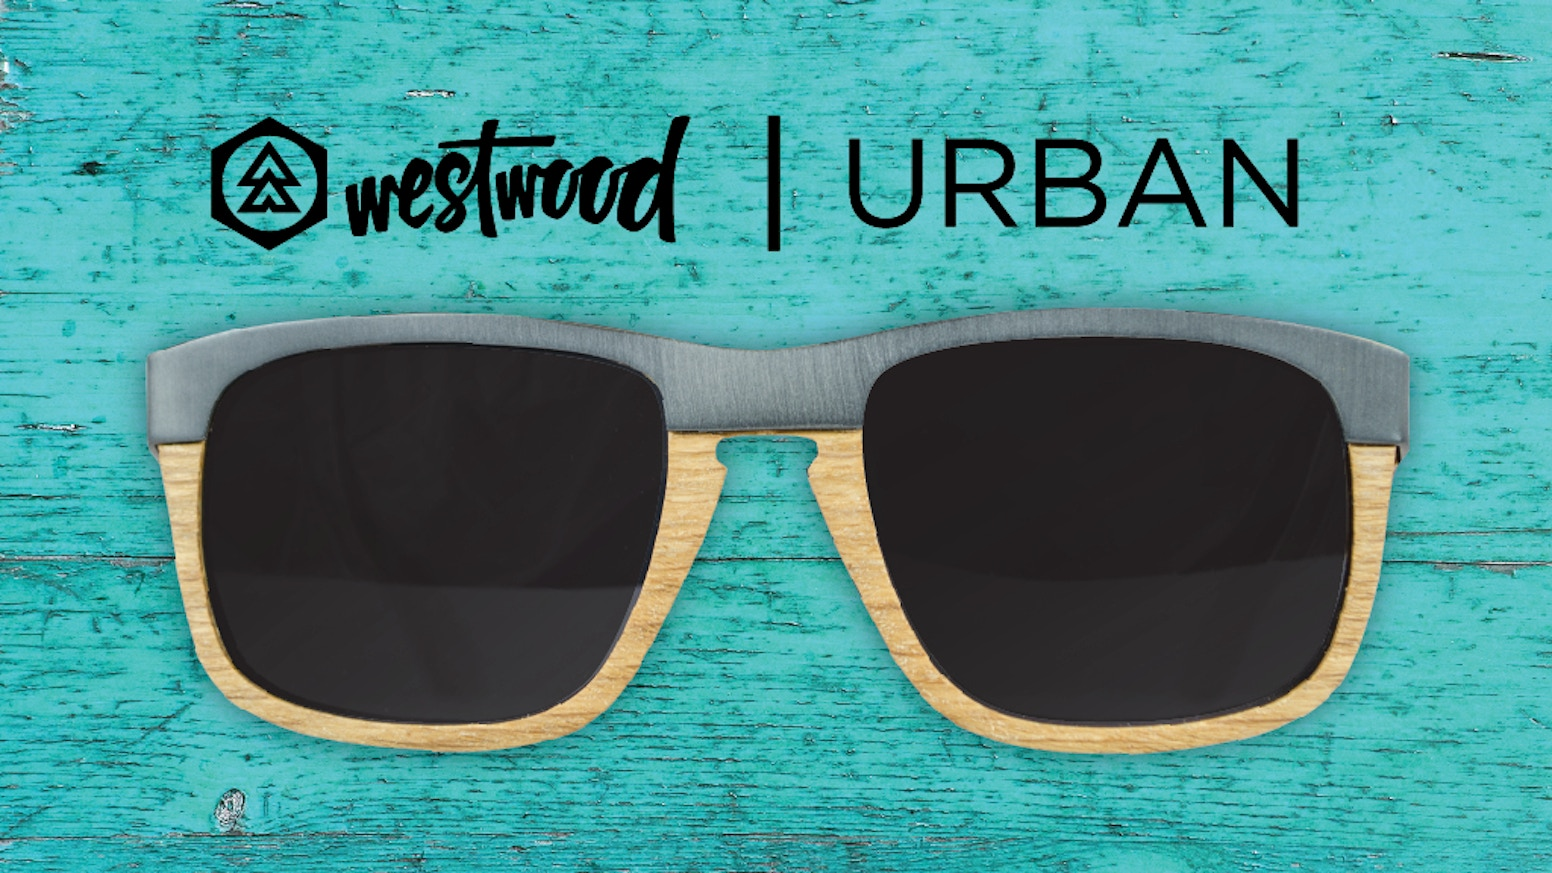 cf3863c633 The Urban Collection - Distressed Wood   Brushed Titanium by ...